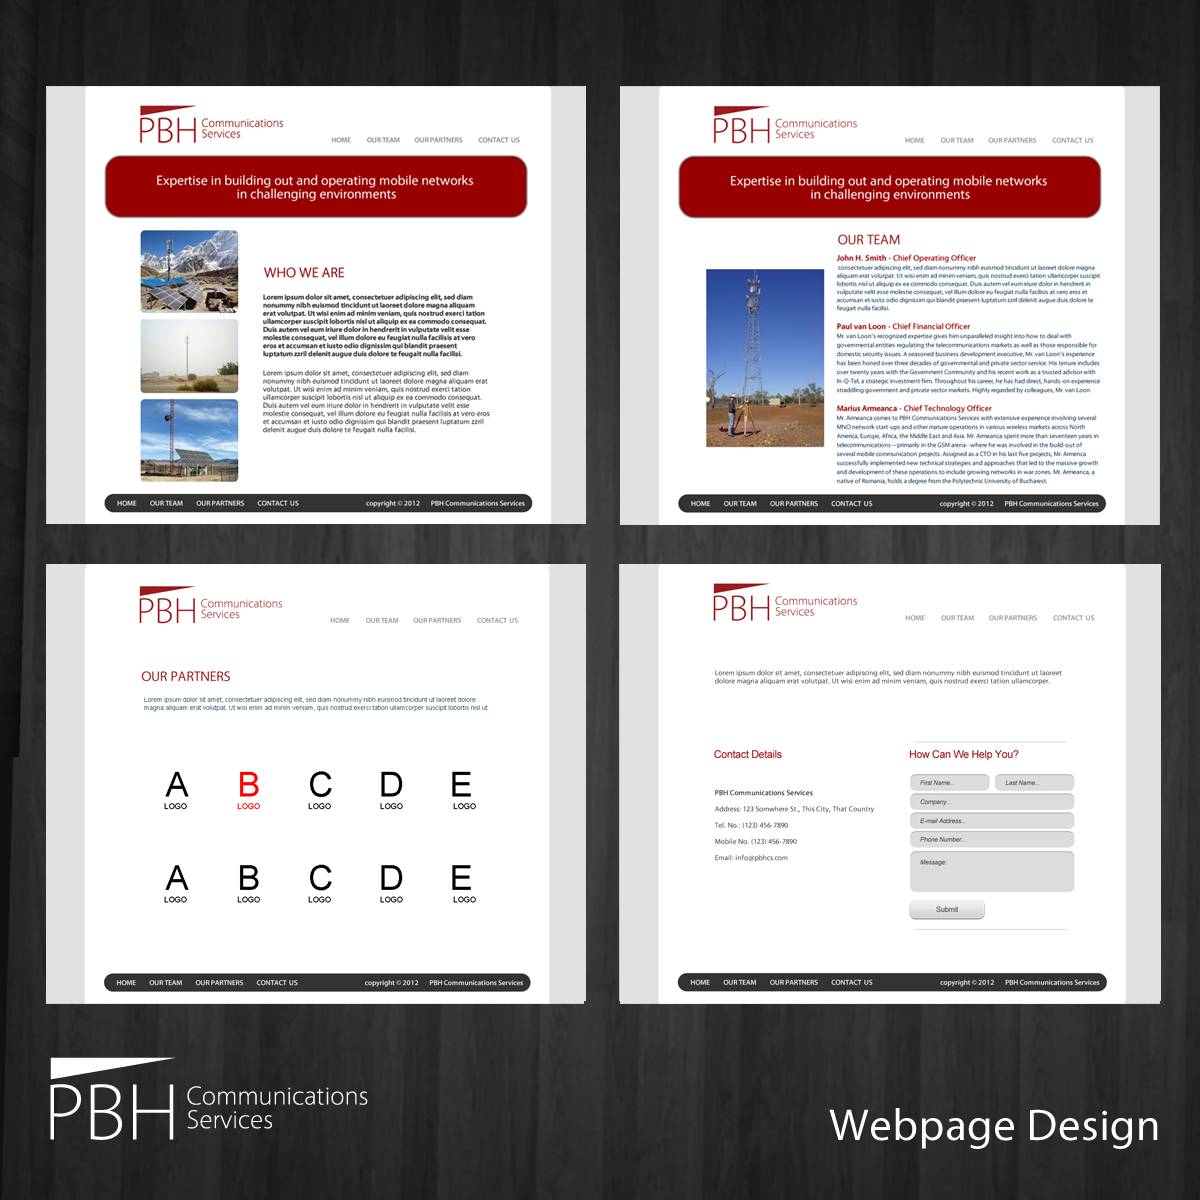 Web Page Design by storm - Entry No. 65 in the Web Page Design Contest New Web Page Design for PBH Communications Services.